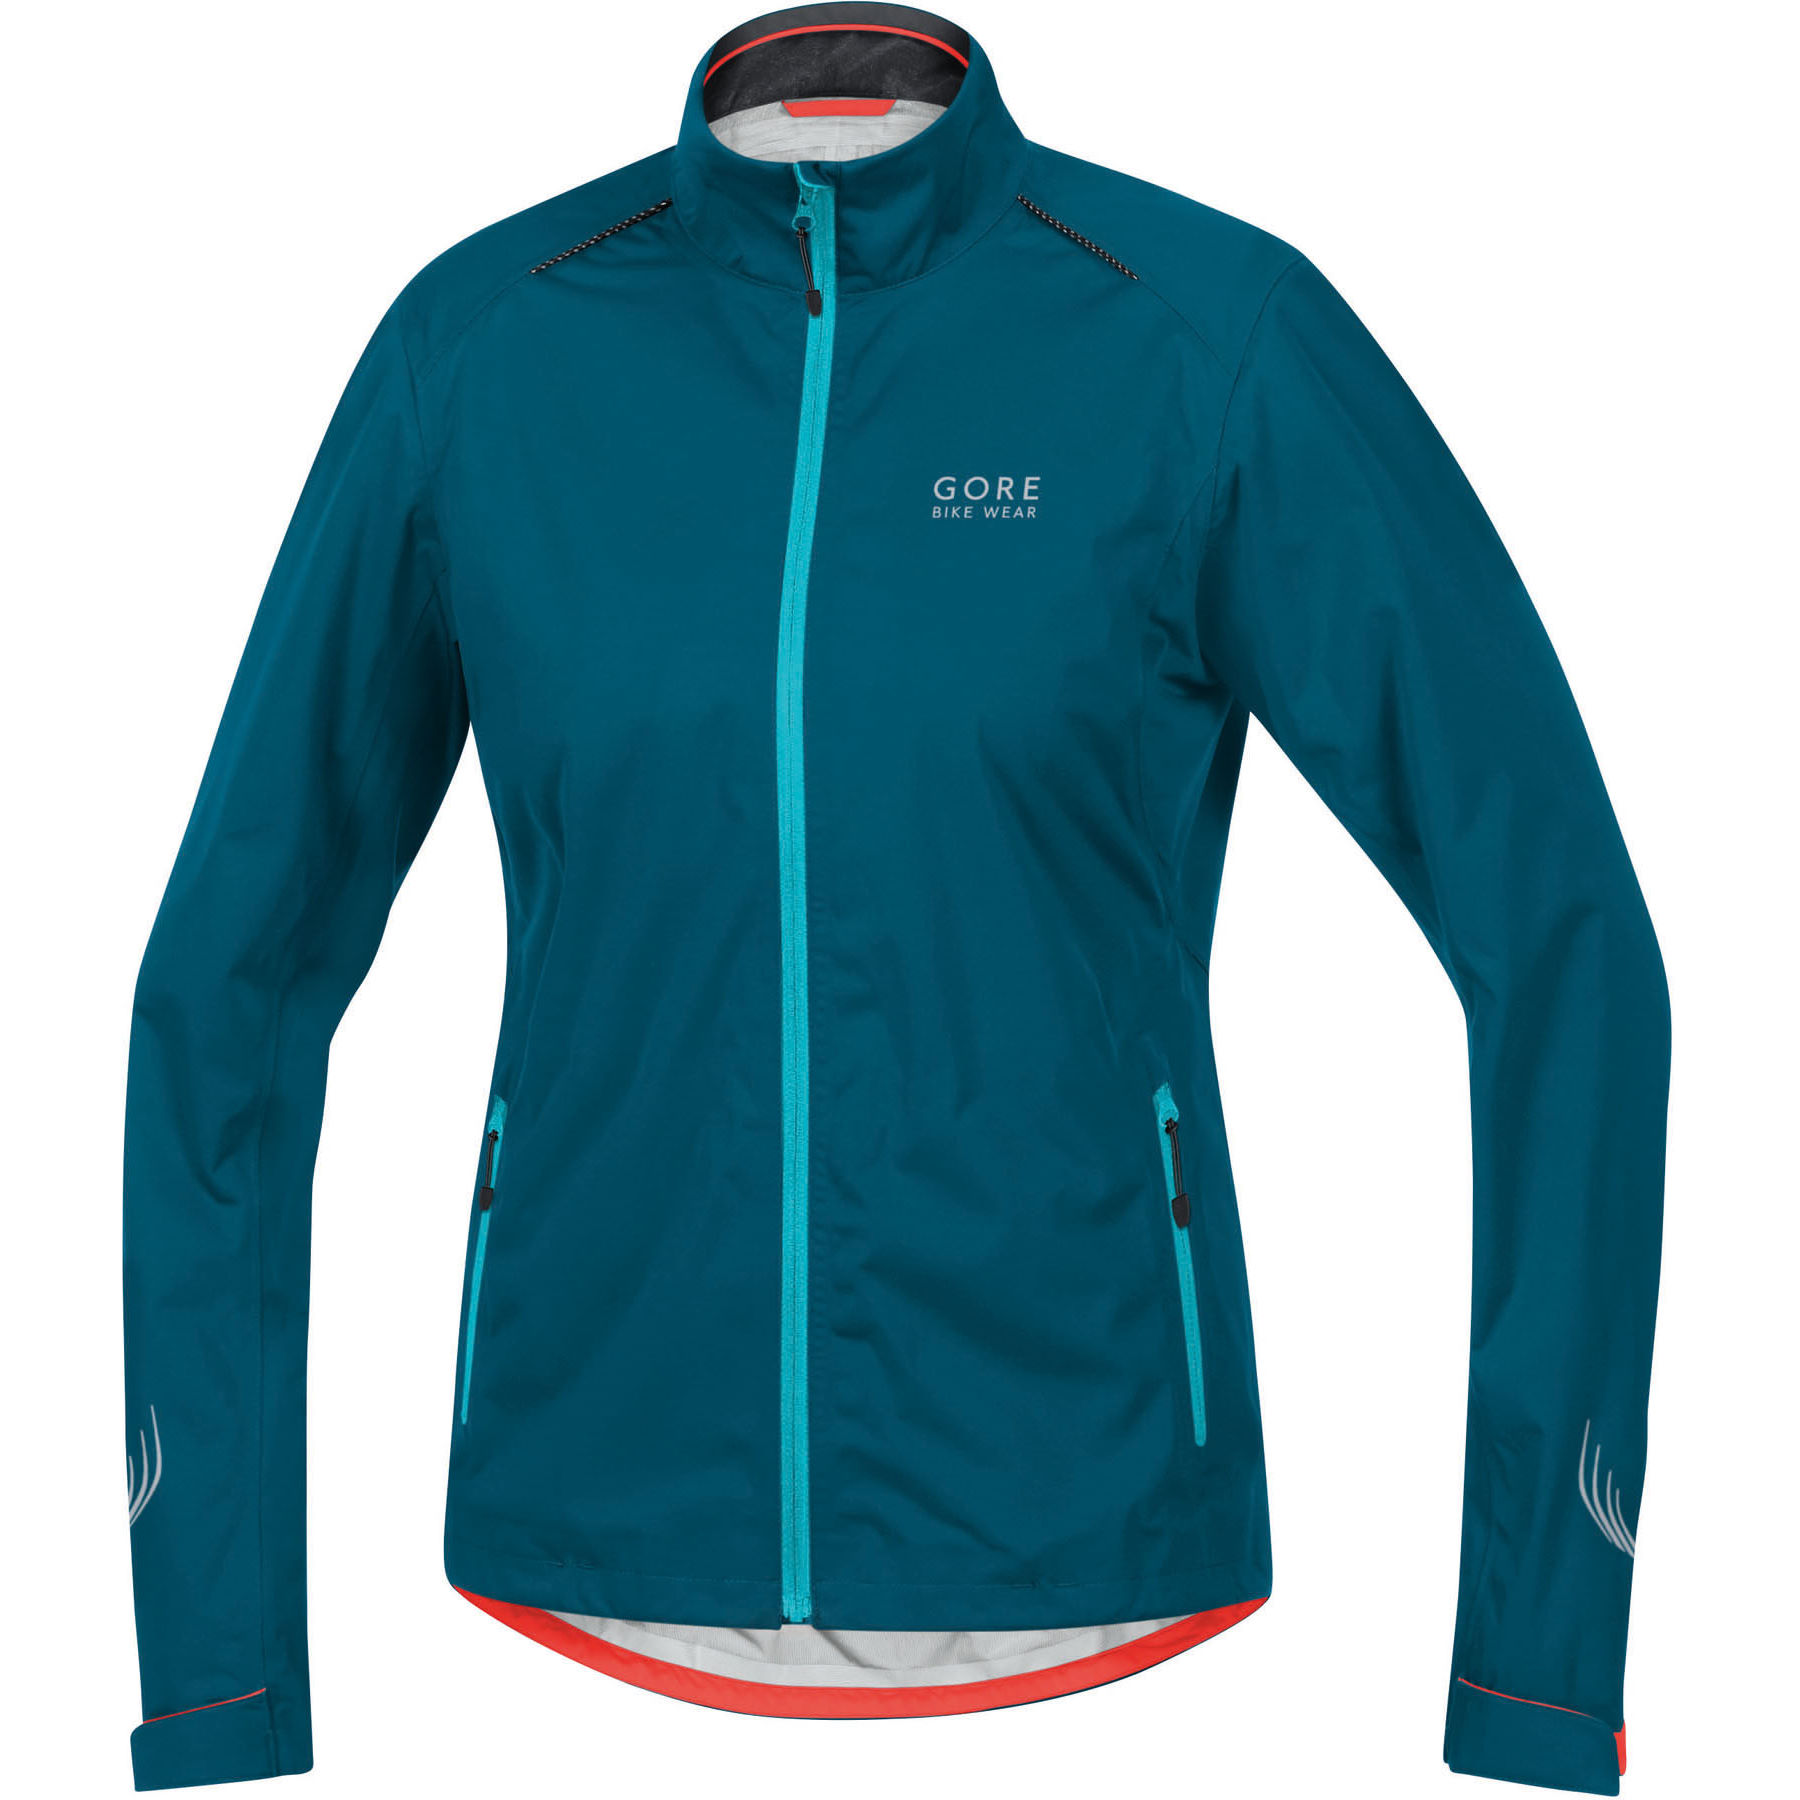 Coupe-vents vélo | Gore Bike Wear | Women's Element Gore-Tex Active Shell Jacket | Wiggle France